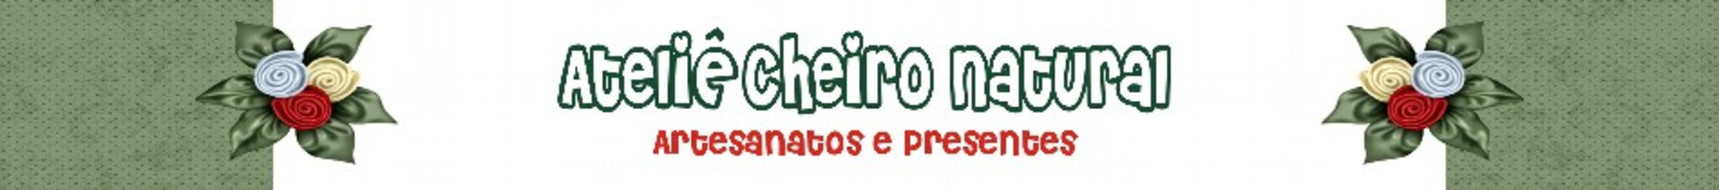 CHEIRO NATURAL